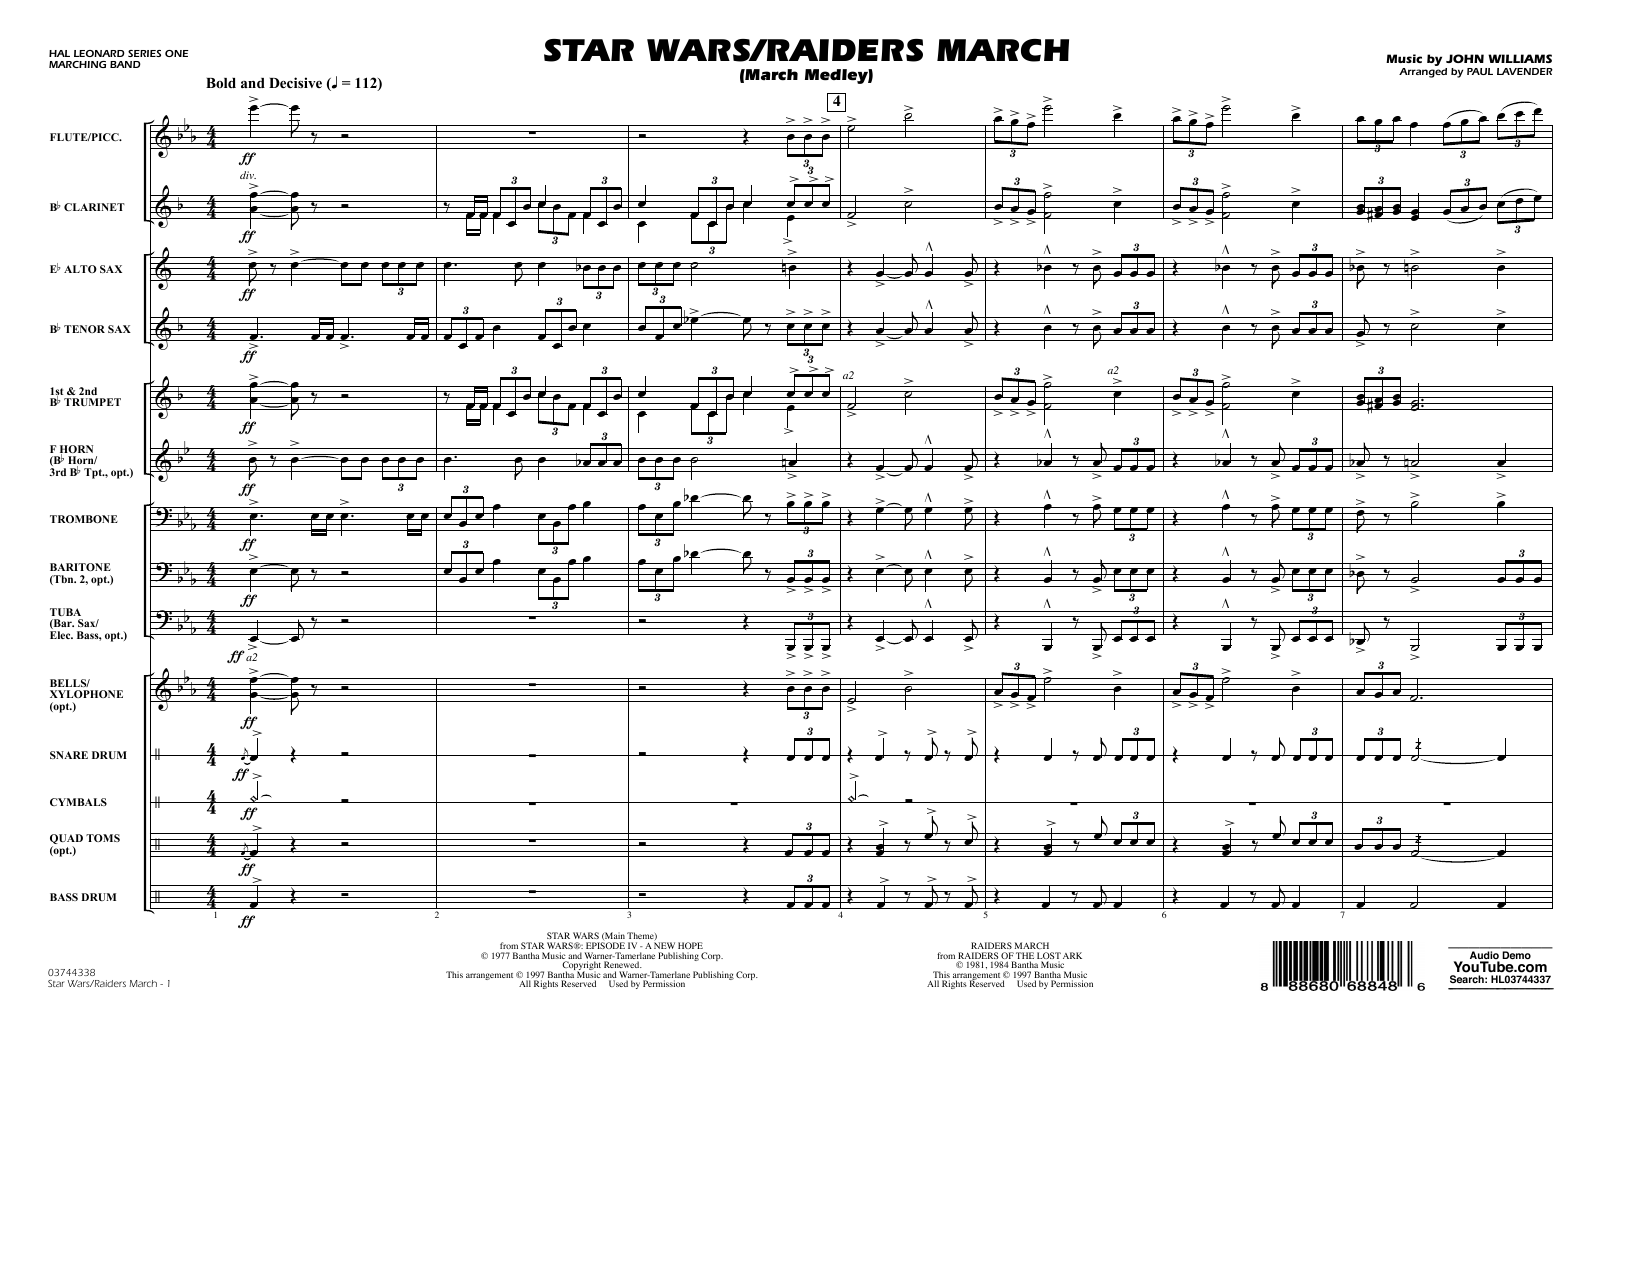 Star Wars/Raiders March - Full Score Partituras Digitales